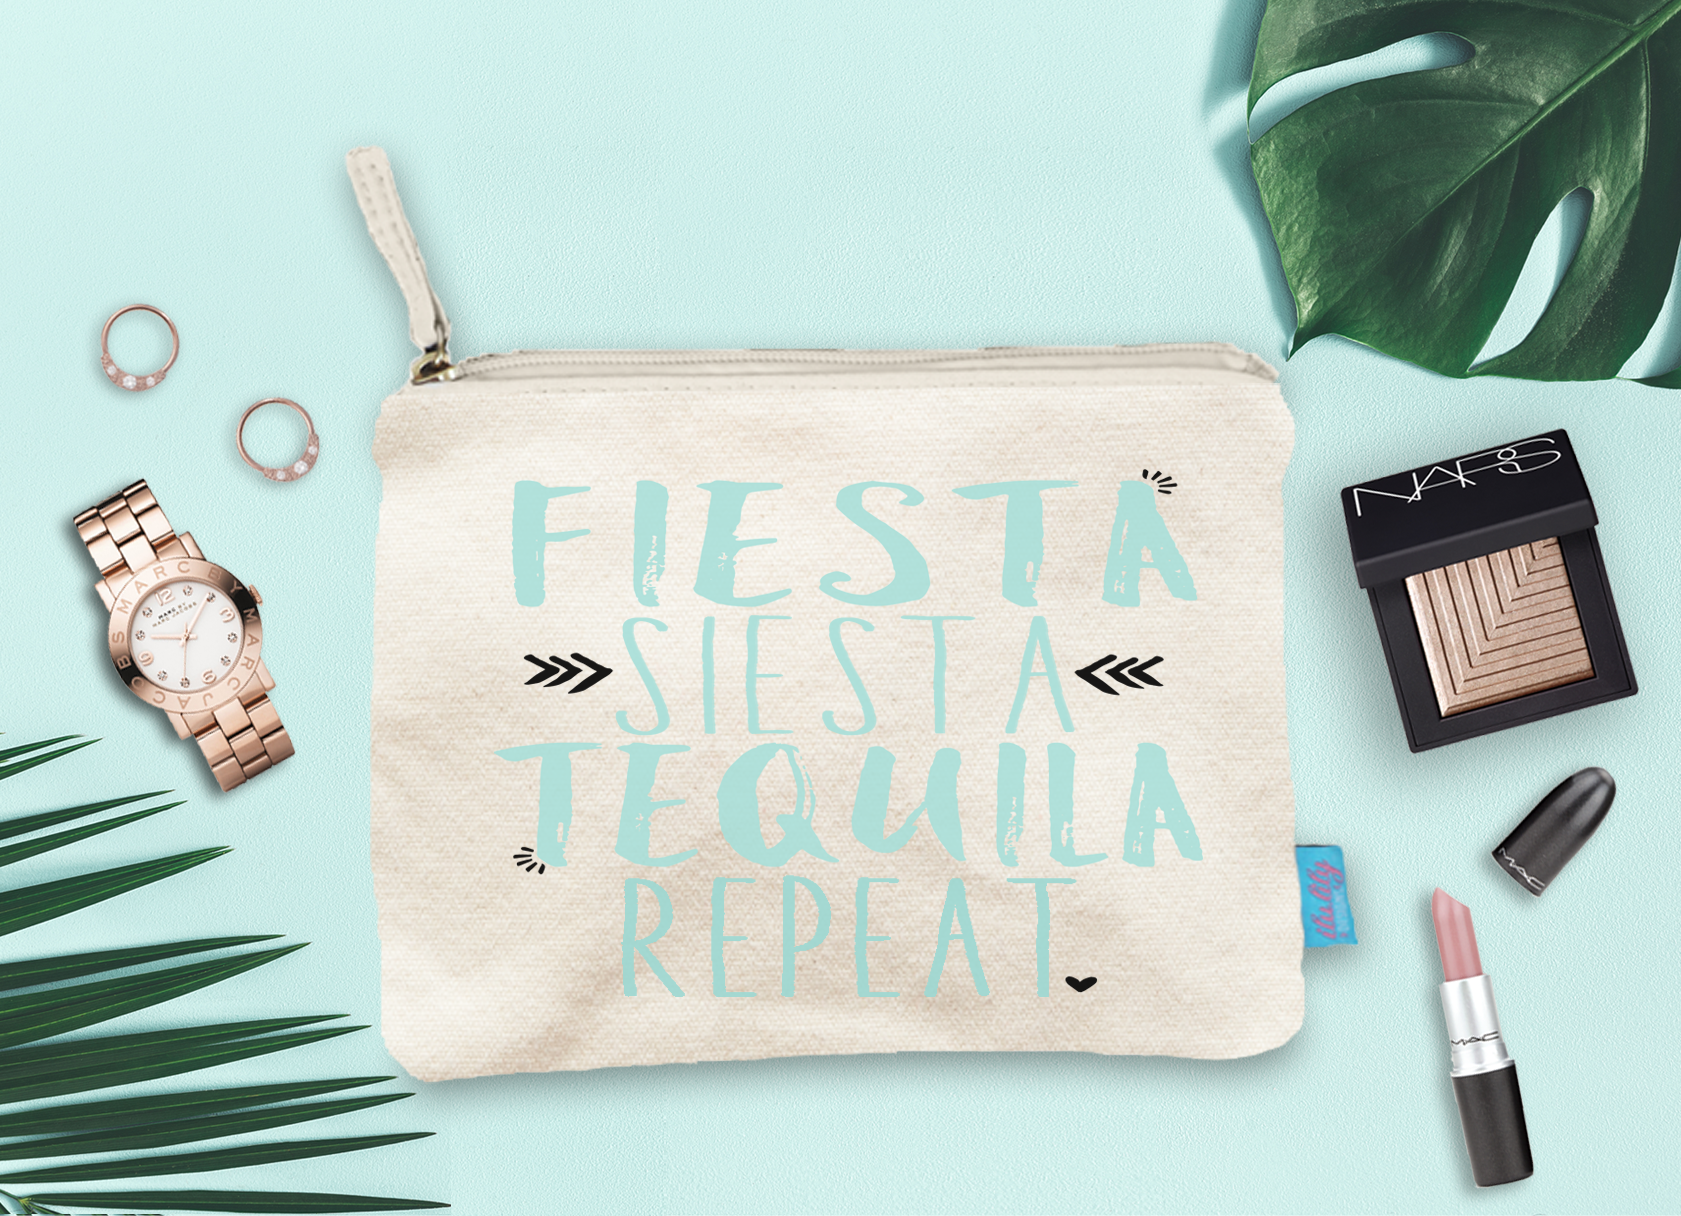 Fiesta Siesta Tequila Repeat Bachelorette Party Bridal Party Makeup Cosmetic Bag